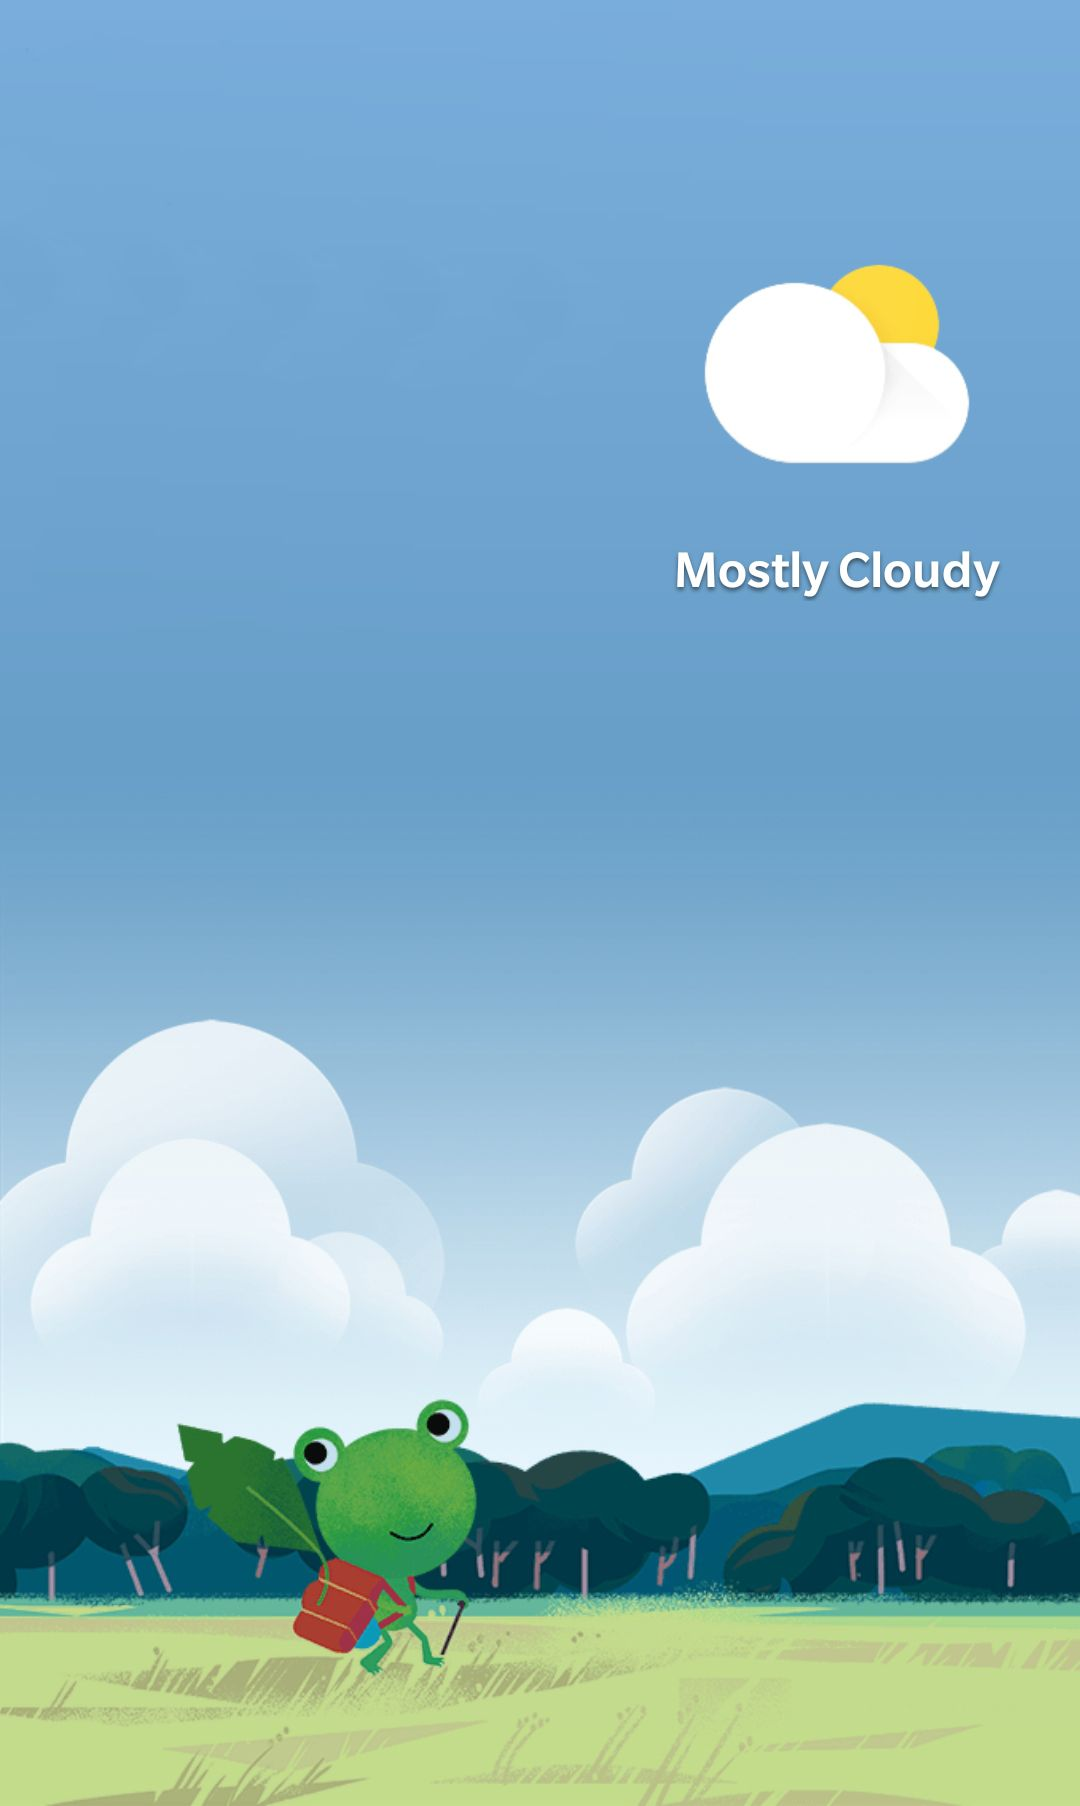 Google/Android weather frog mostly cloudy Google weather